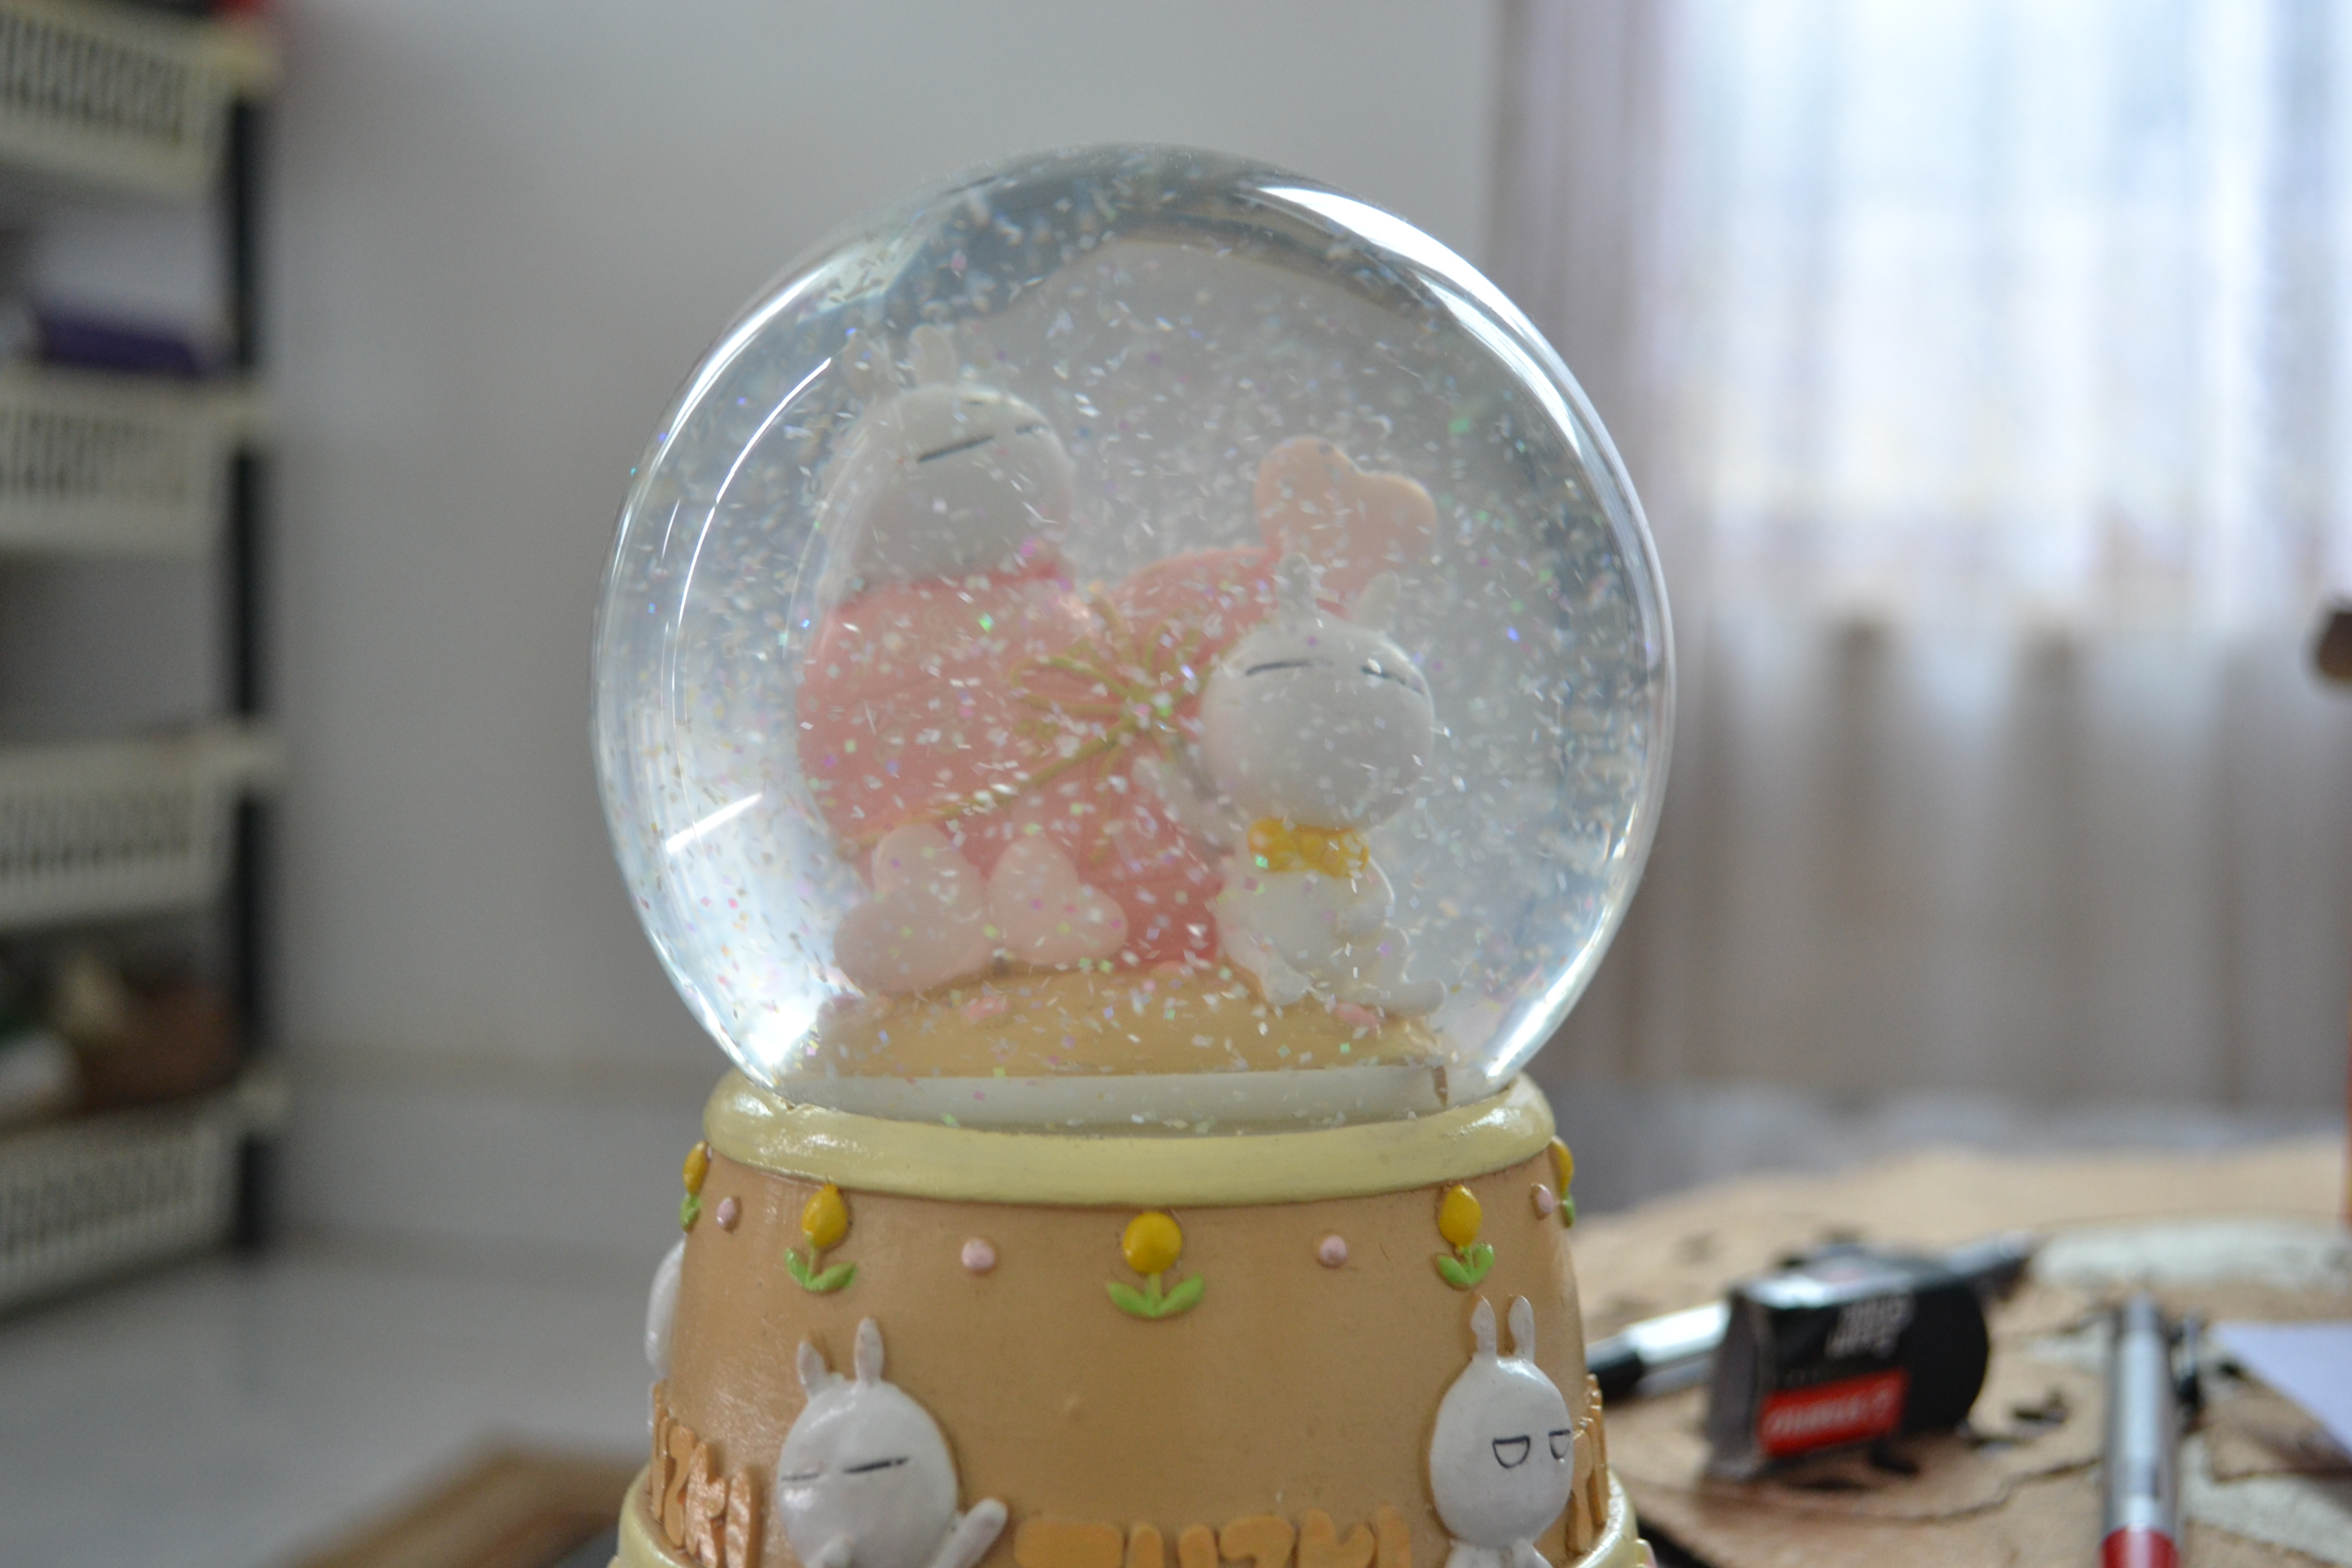 A Snow Globe, Ball, Glass, Globe, Miniature, HQ Photo